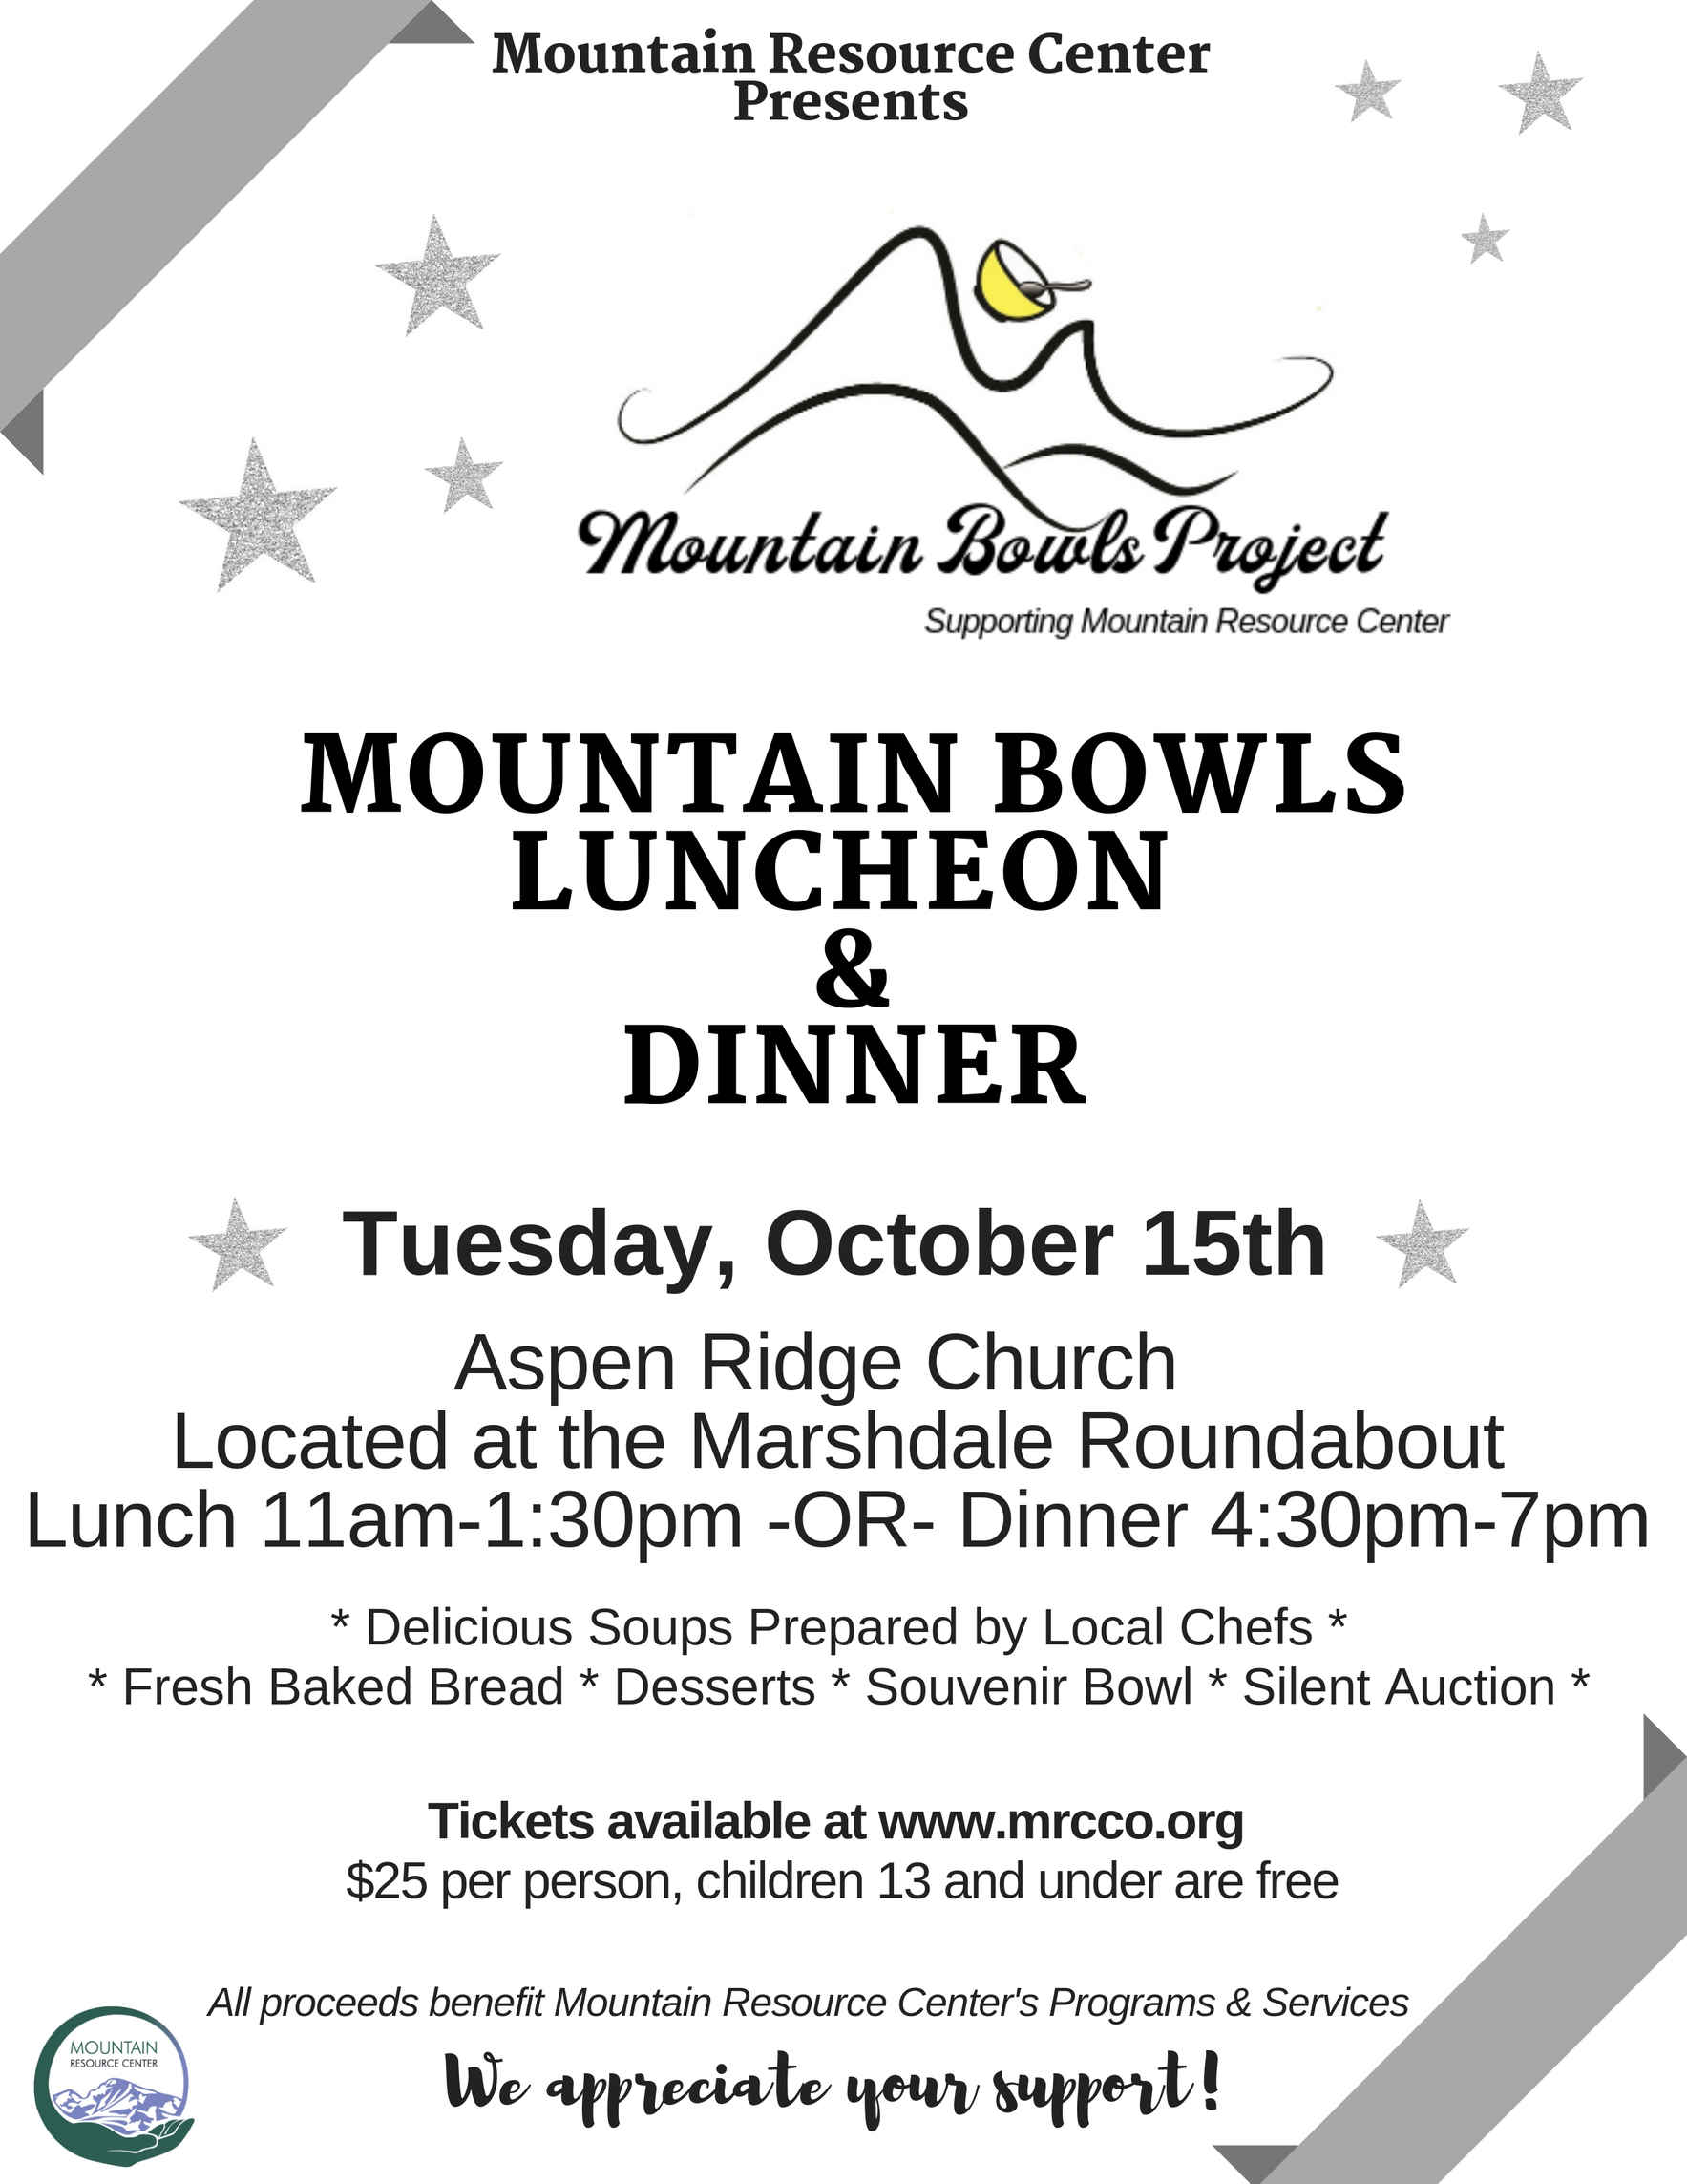 2019 Mountain Bowls Luncheon & Dinner image